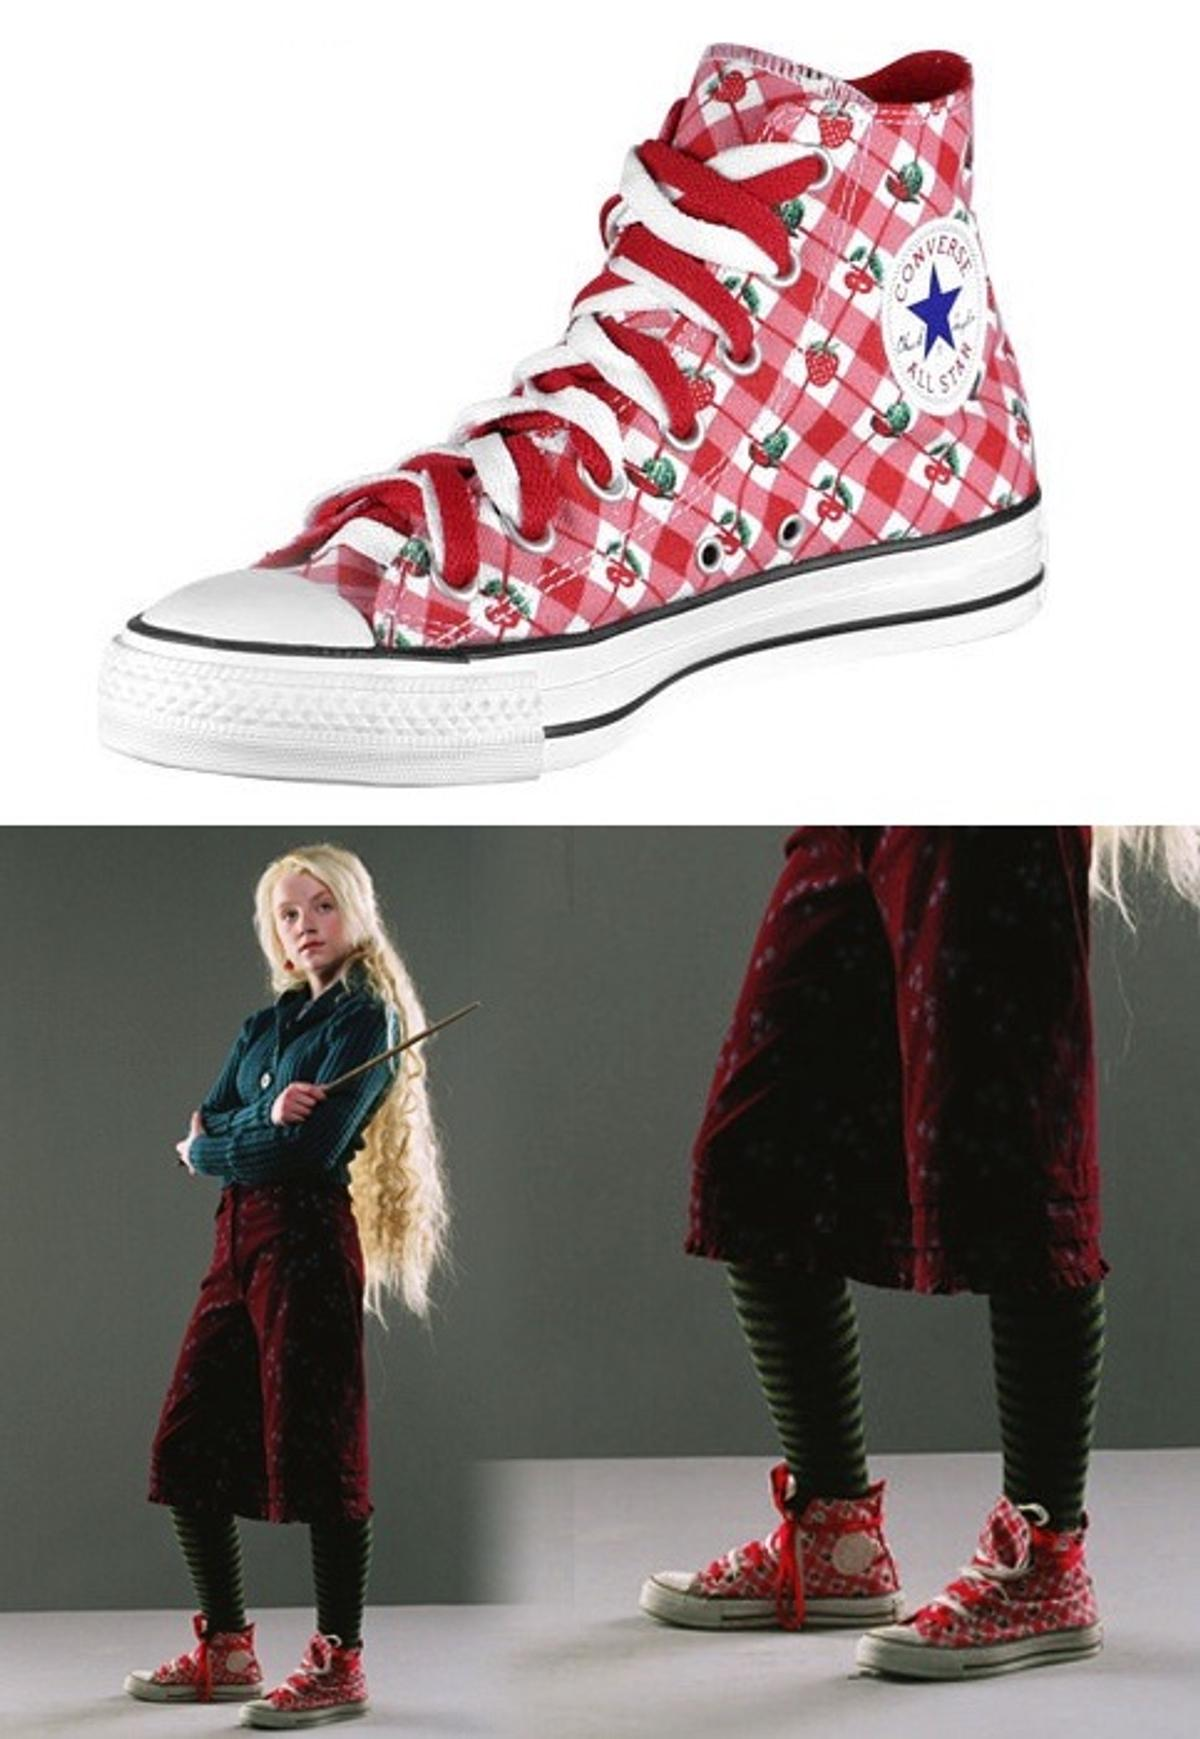 Luna Lovegood Erdbeer Converse Chucks in 29549 Bad Bevensen